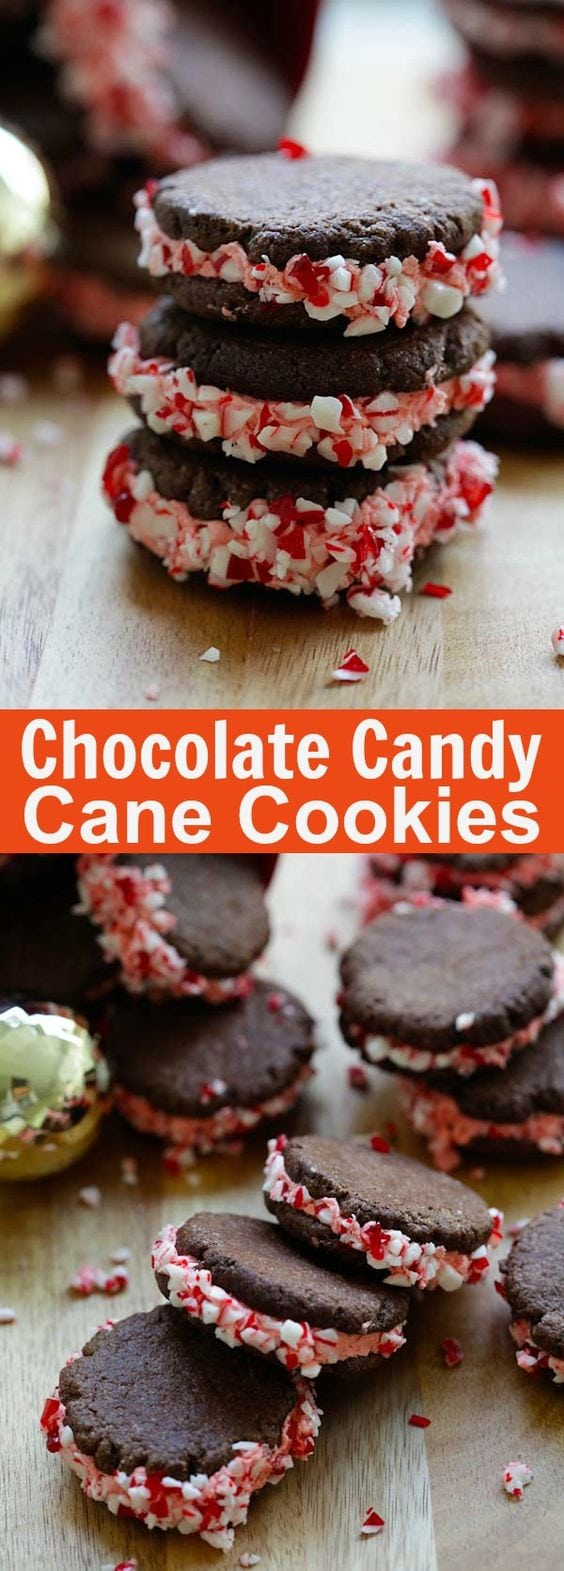 Chocolate Candy Cane Cookies – festive chocolate cookies with frosting and candy canes! The perfect cookie recipe for the holidays! | rasamalaysia.com